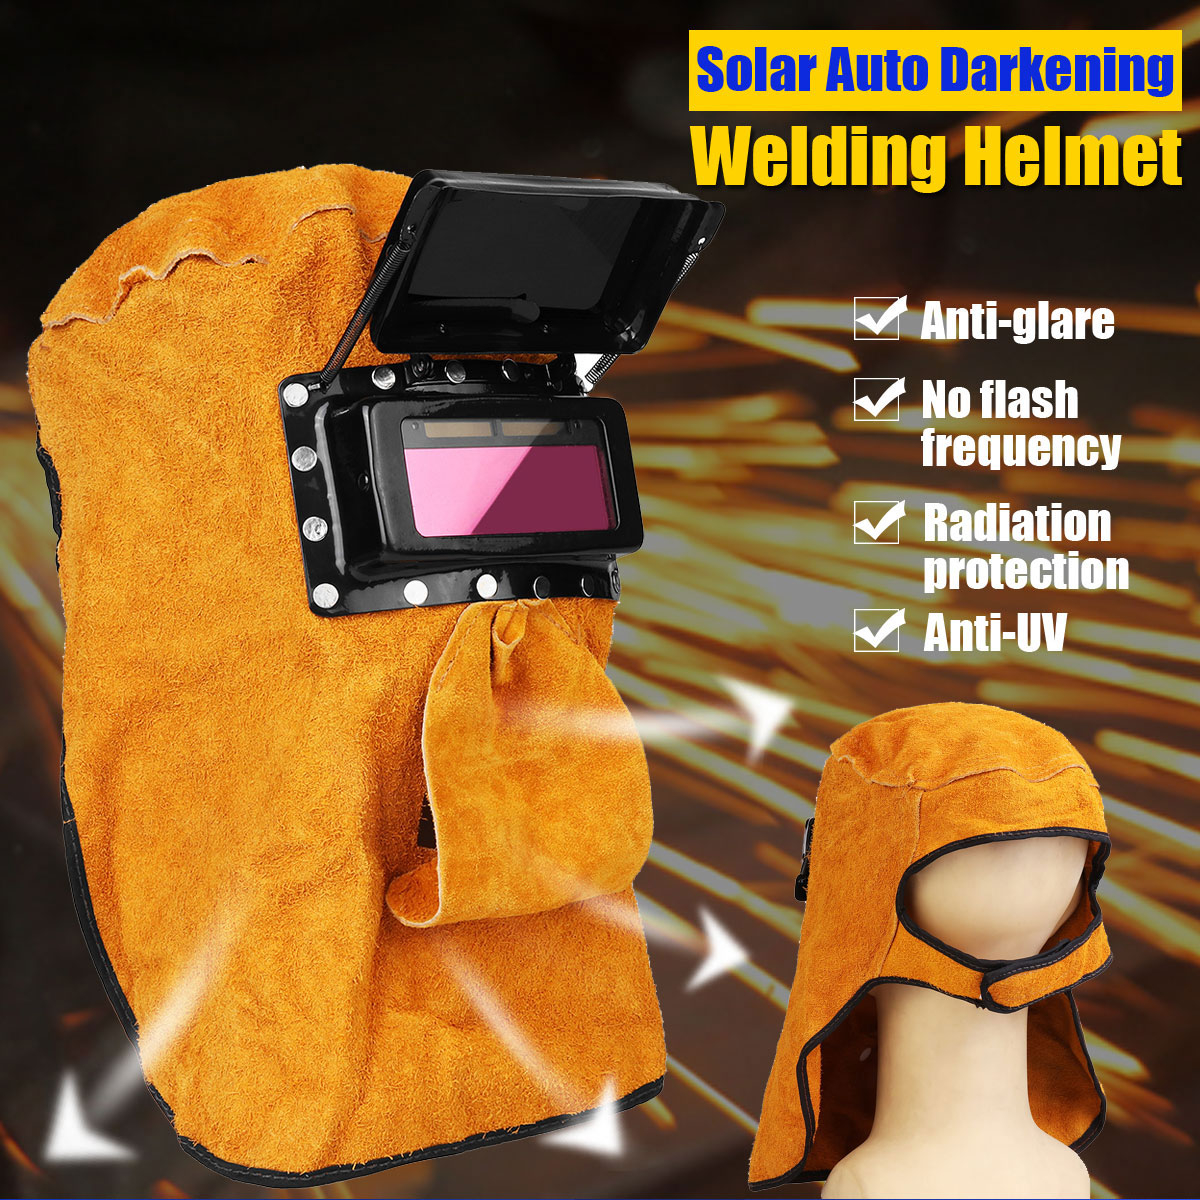 FORGELO Leather Hood Welding Helmet Automatic Light Welding Mask With Air Hole Radiation Splash Protection Solar Welding Helmet newest welding glass anti collision version welding eye protection glass welding helmet pc welding mask